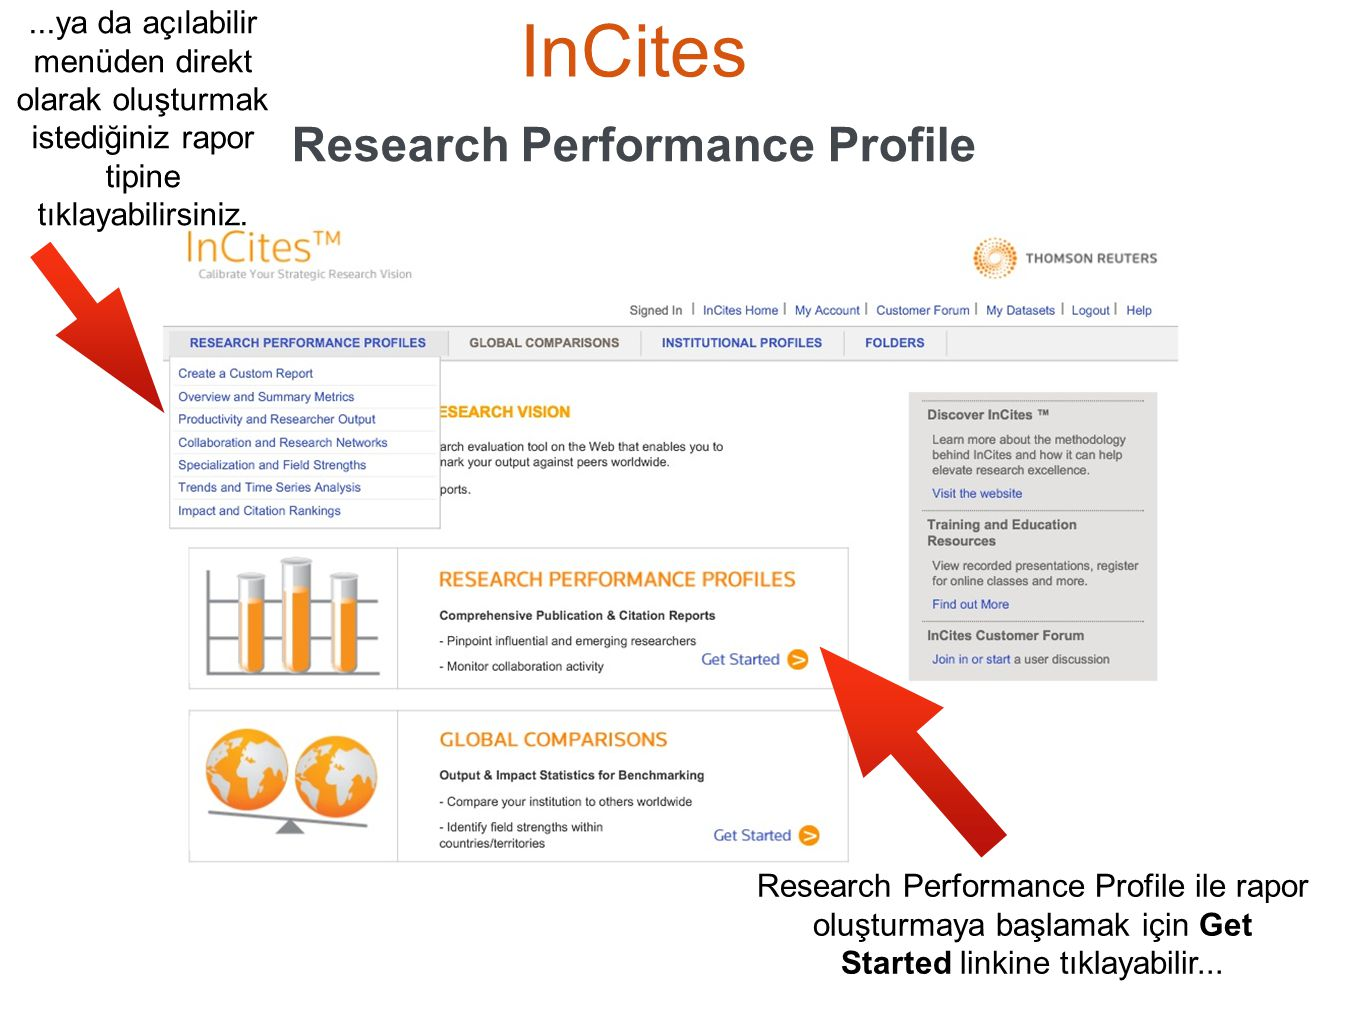 Research Performance Profile